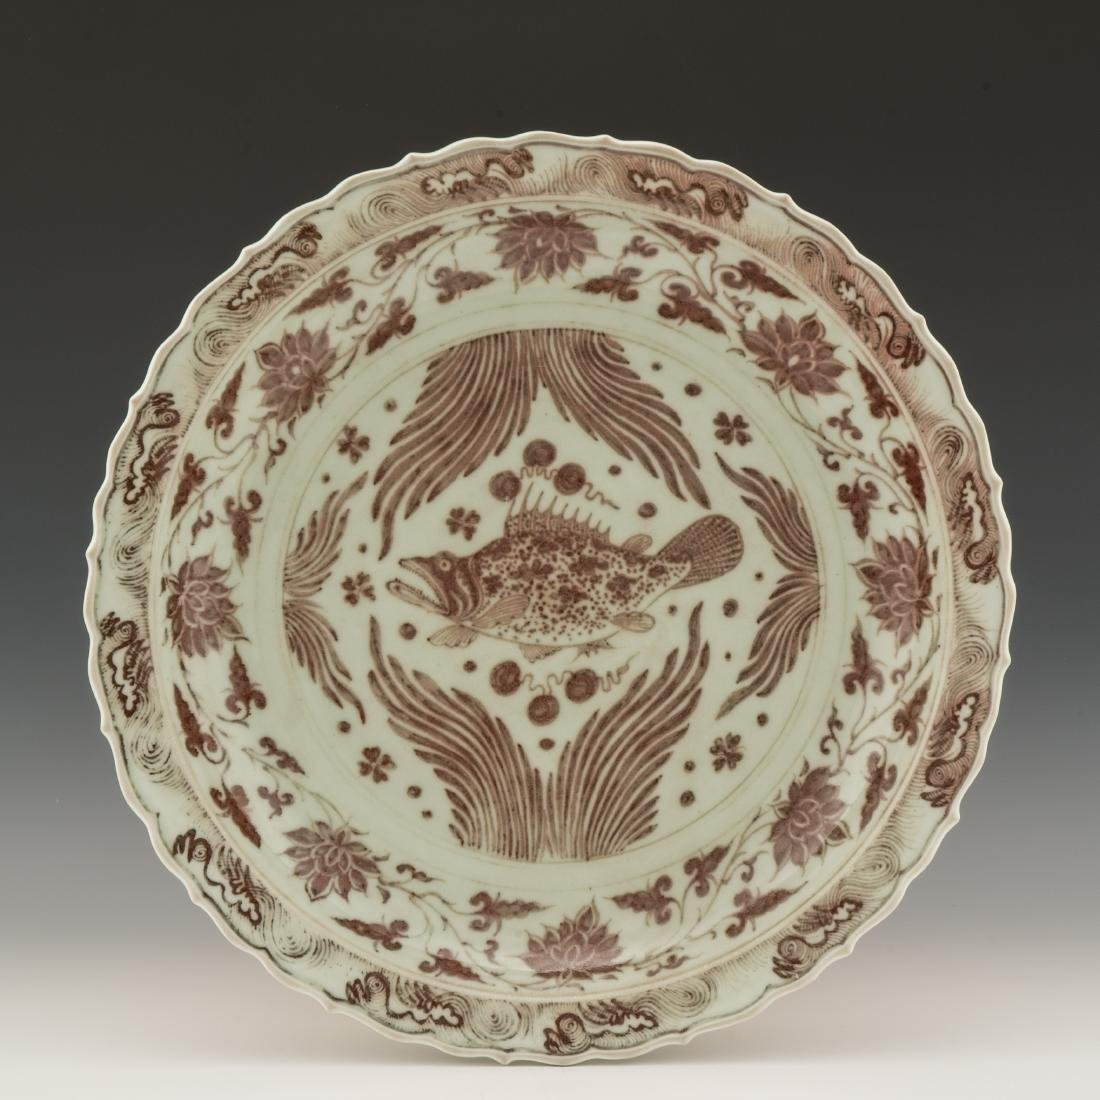 MING COPPER-RED UNDERGLAZED CHARGER WITH MANDARIN FISH